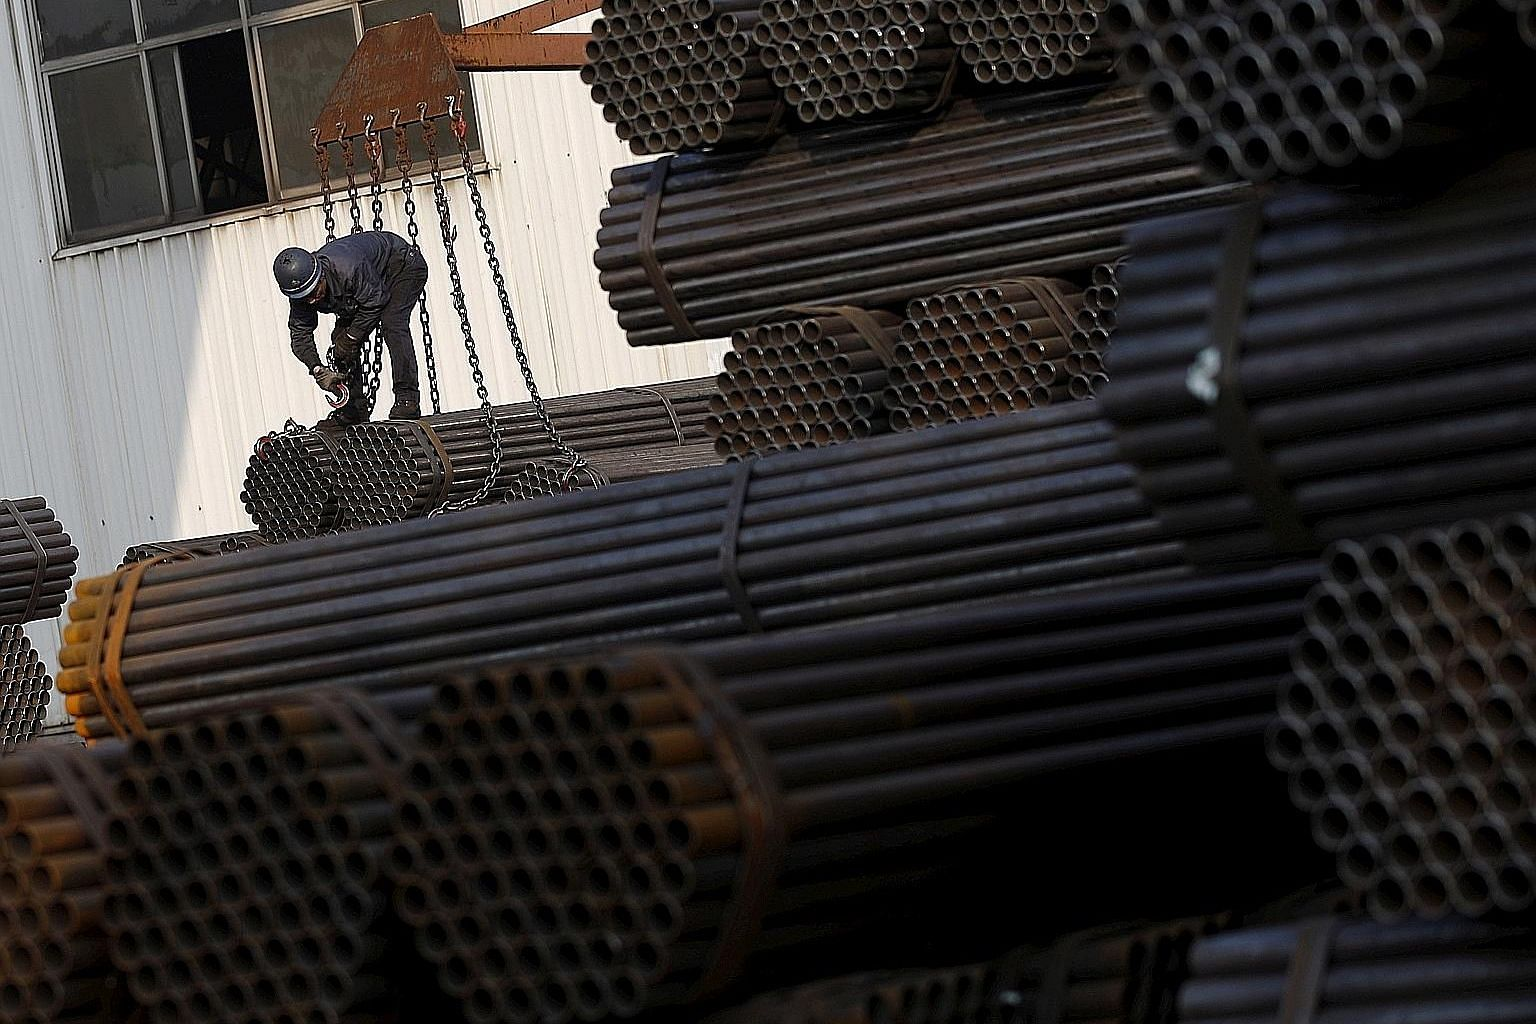 The key reform areas comprise cutting excess capacity of heavy industries such as coal and steel, reducing housing stock, lowering financial leverage, cutting business costs and improving social security.